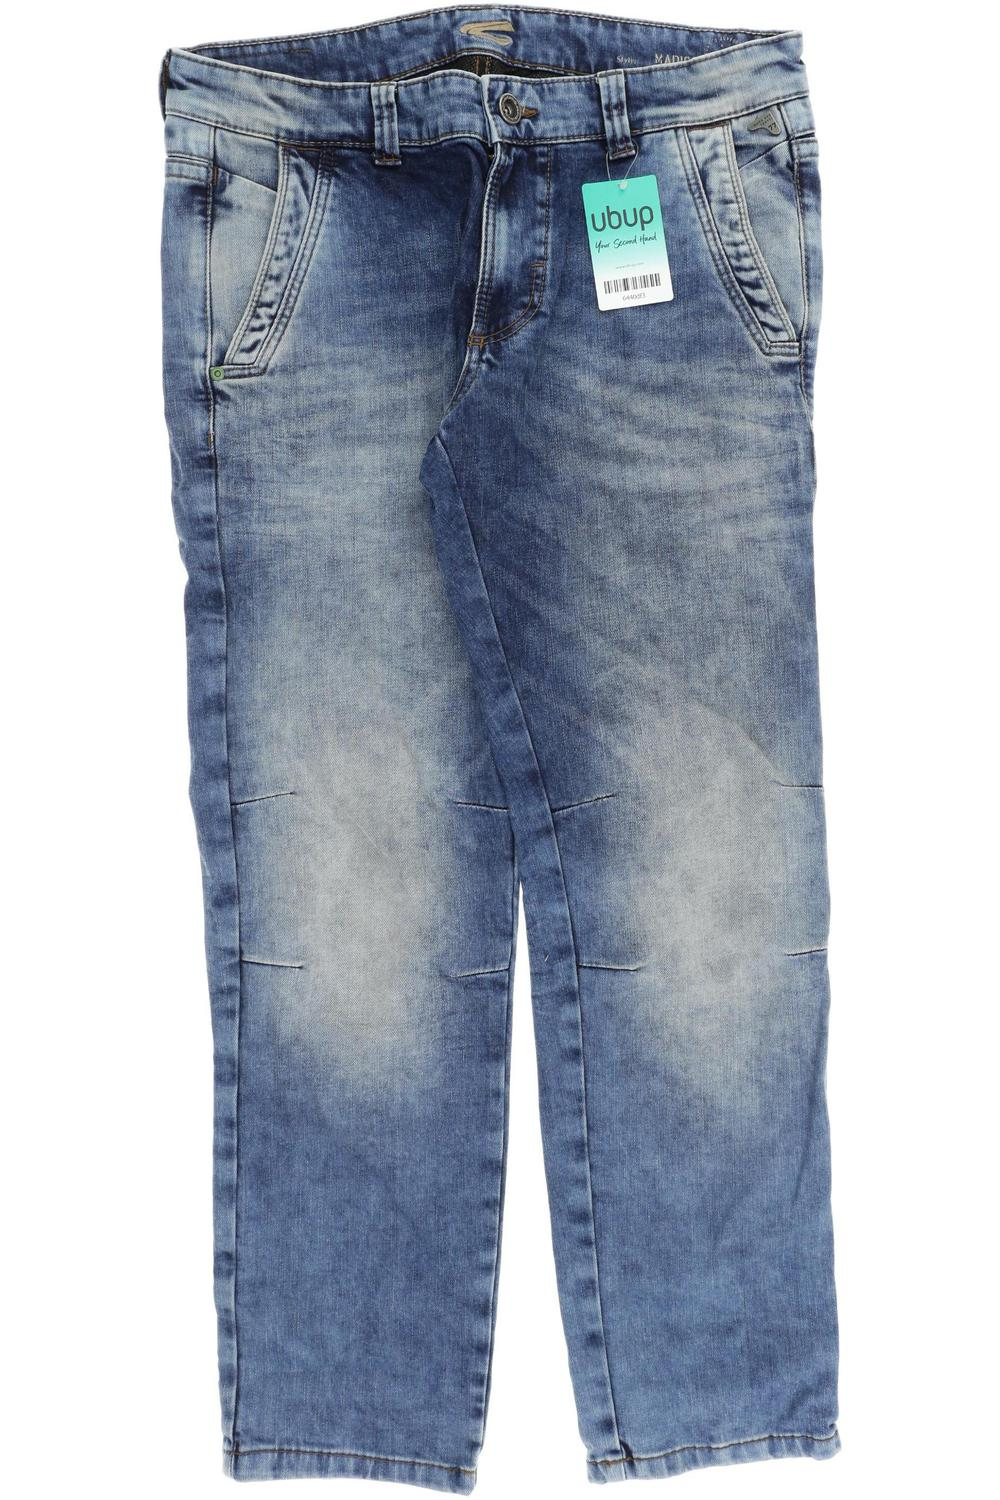 purchase cheap 18b5f 94d3f ubup | camel active Herren Jeans INCH 34 Second Hand kaufen